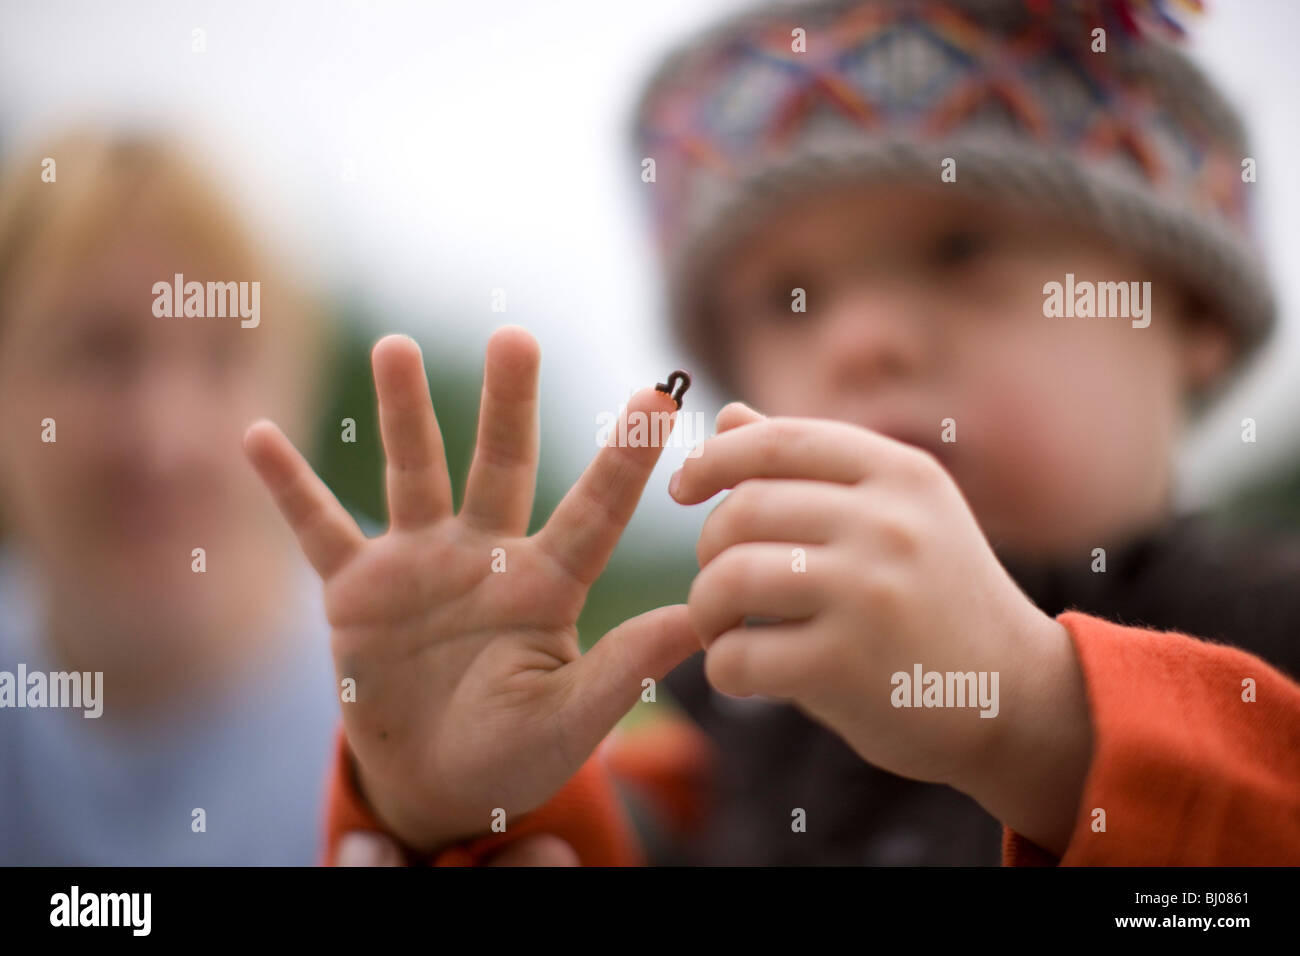 Young boy looking at an inchworm crawling on his hand. - Stock Image